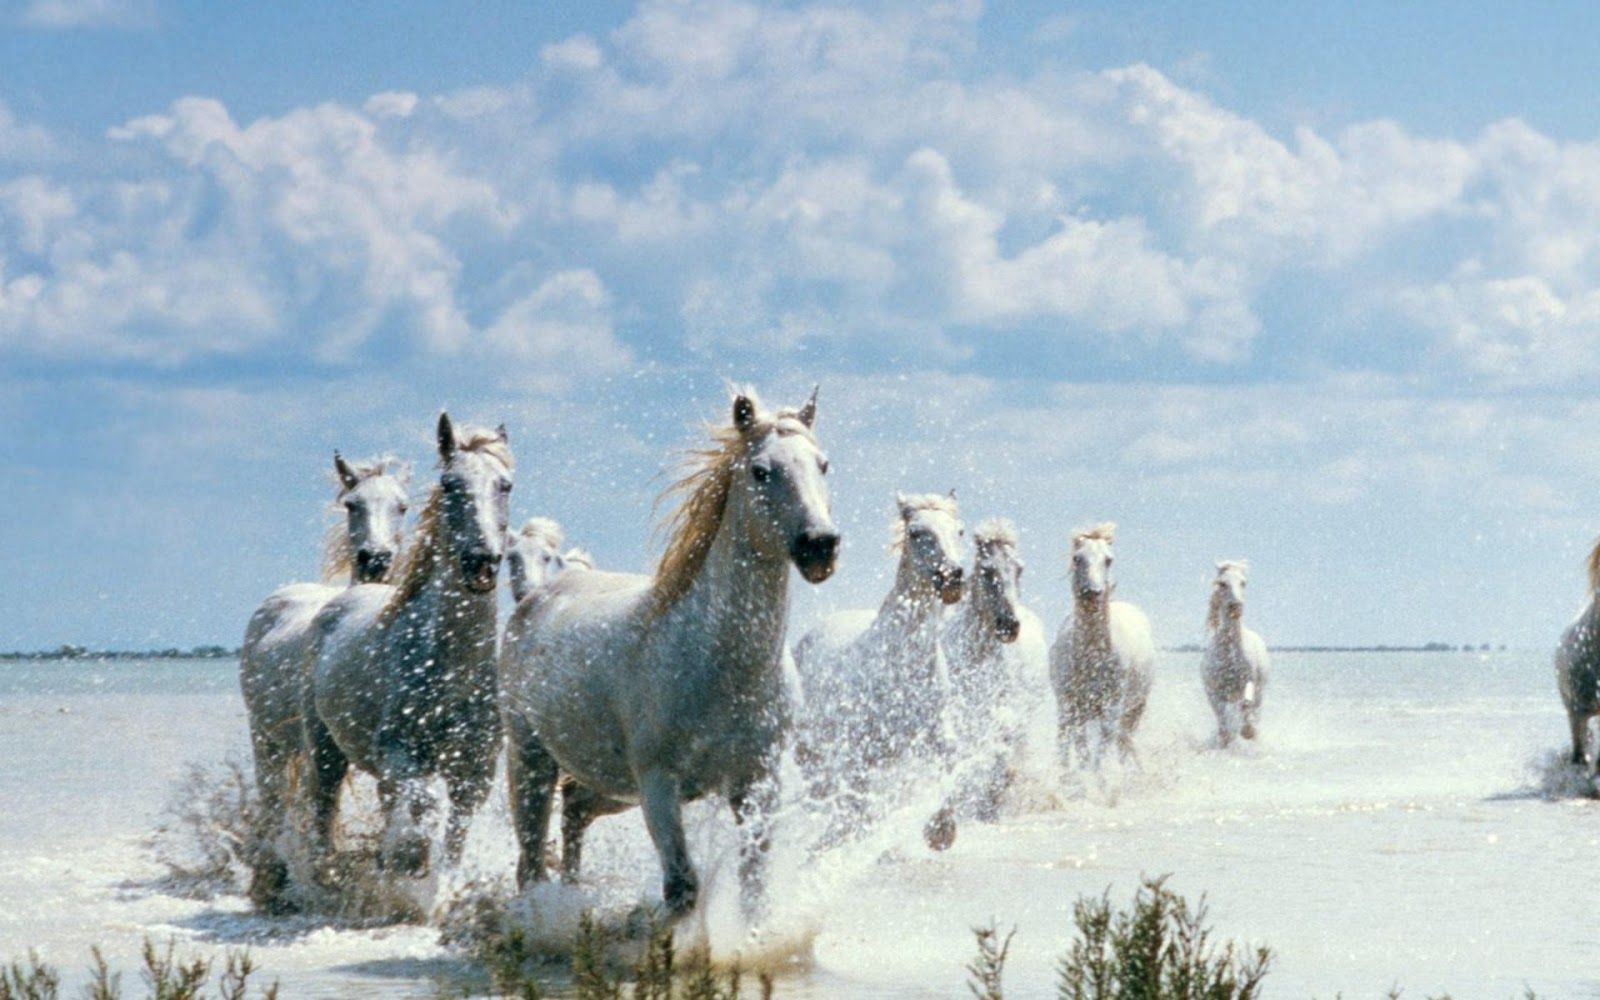 Horse Hd Wallpapers 1080p Posted By Samantha Thompson